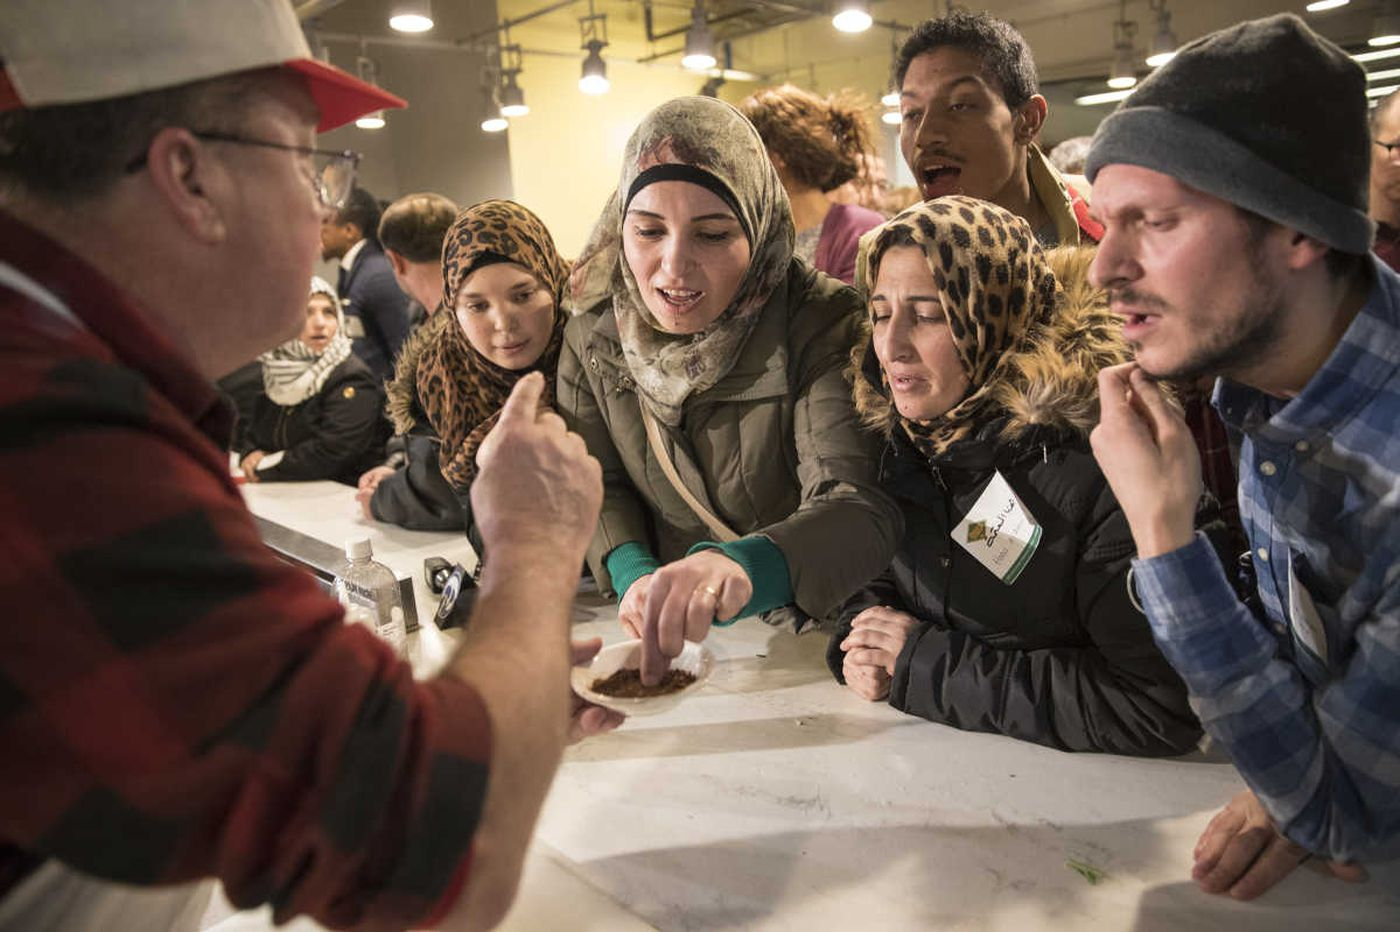 Syrian refugees meet their Lower Northeast neighbors at Reading Terminal Market